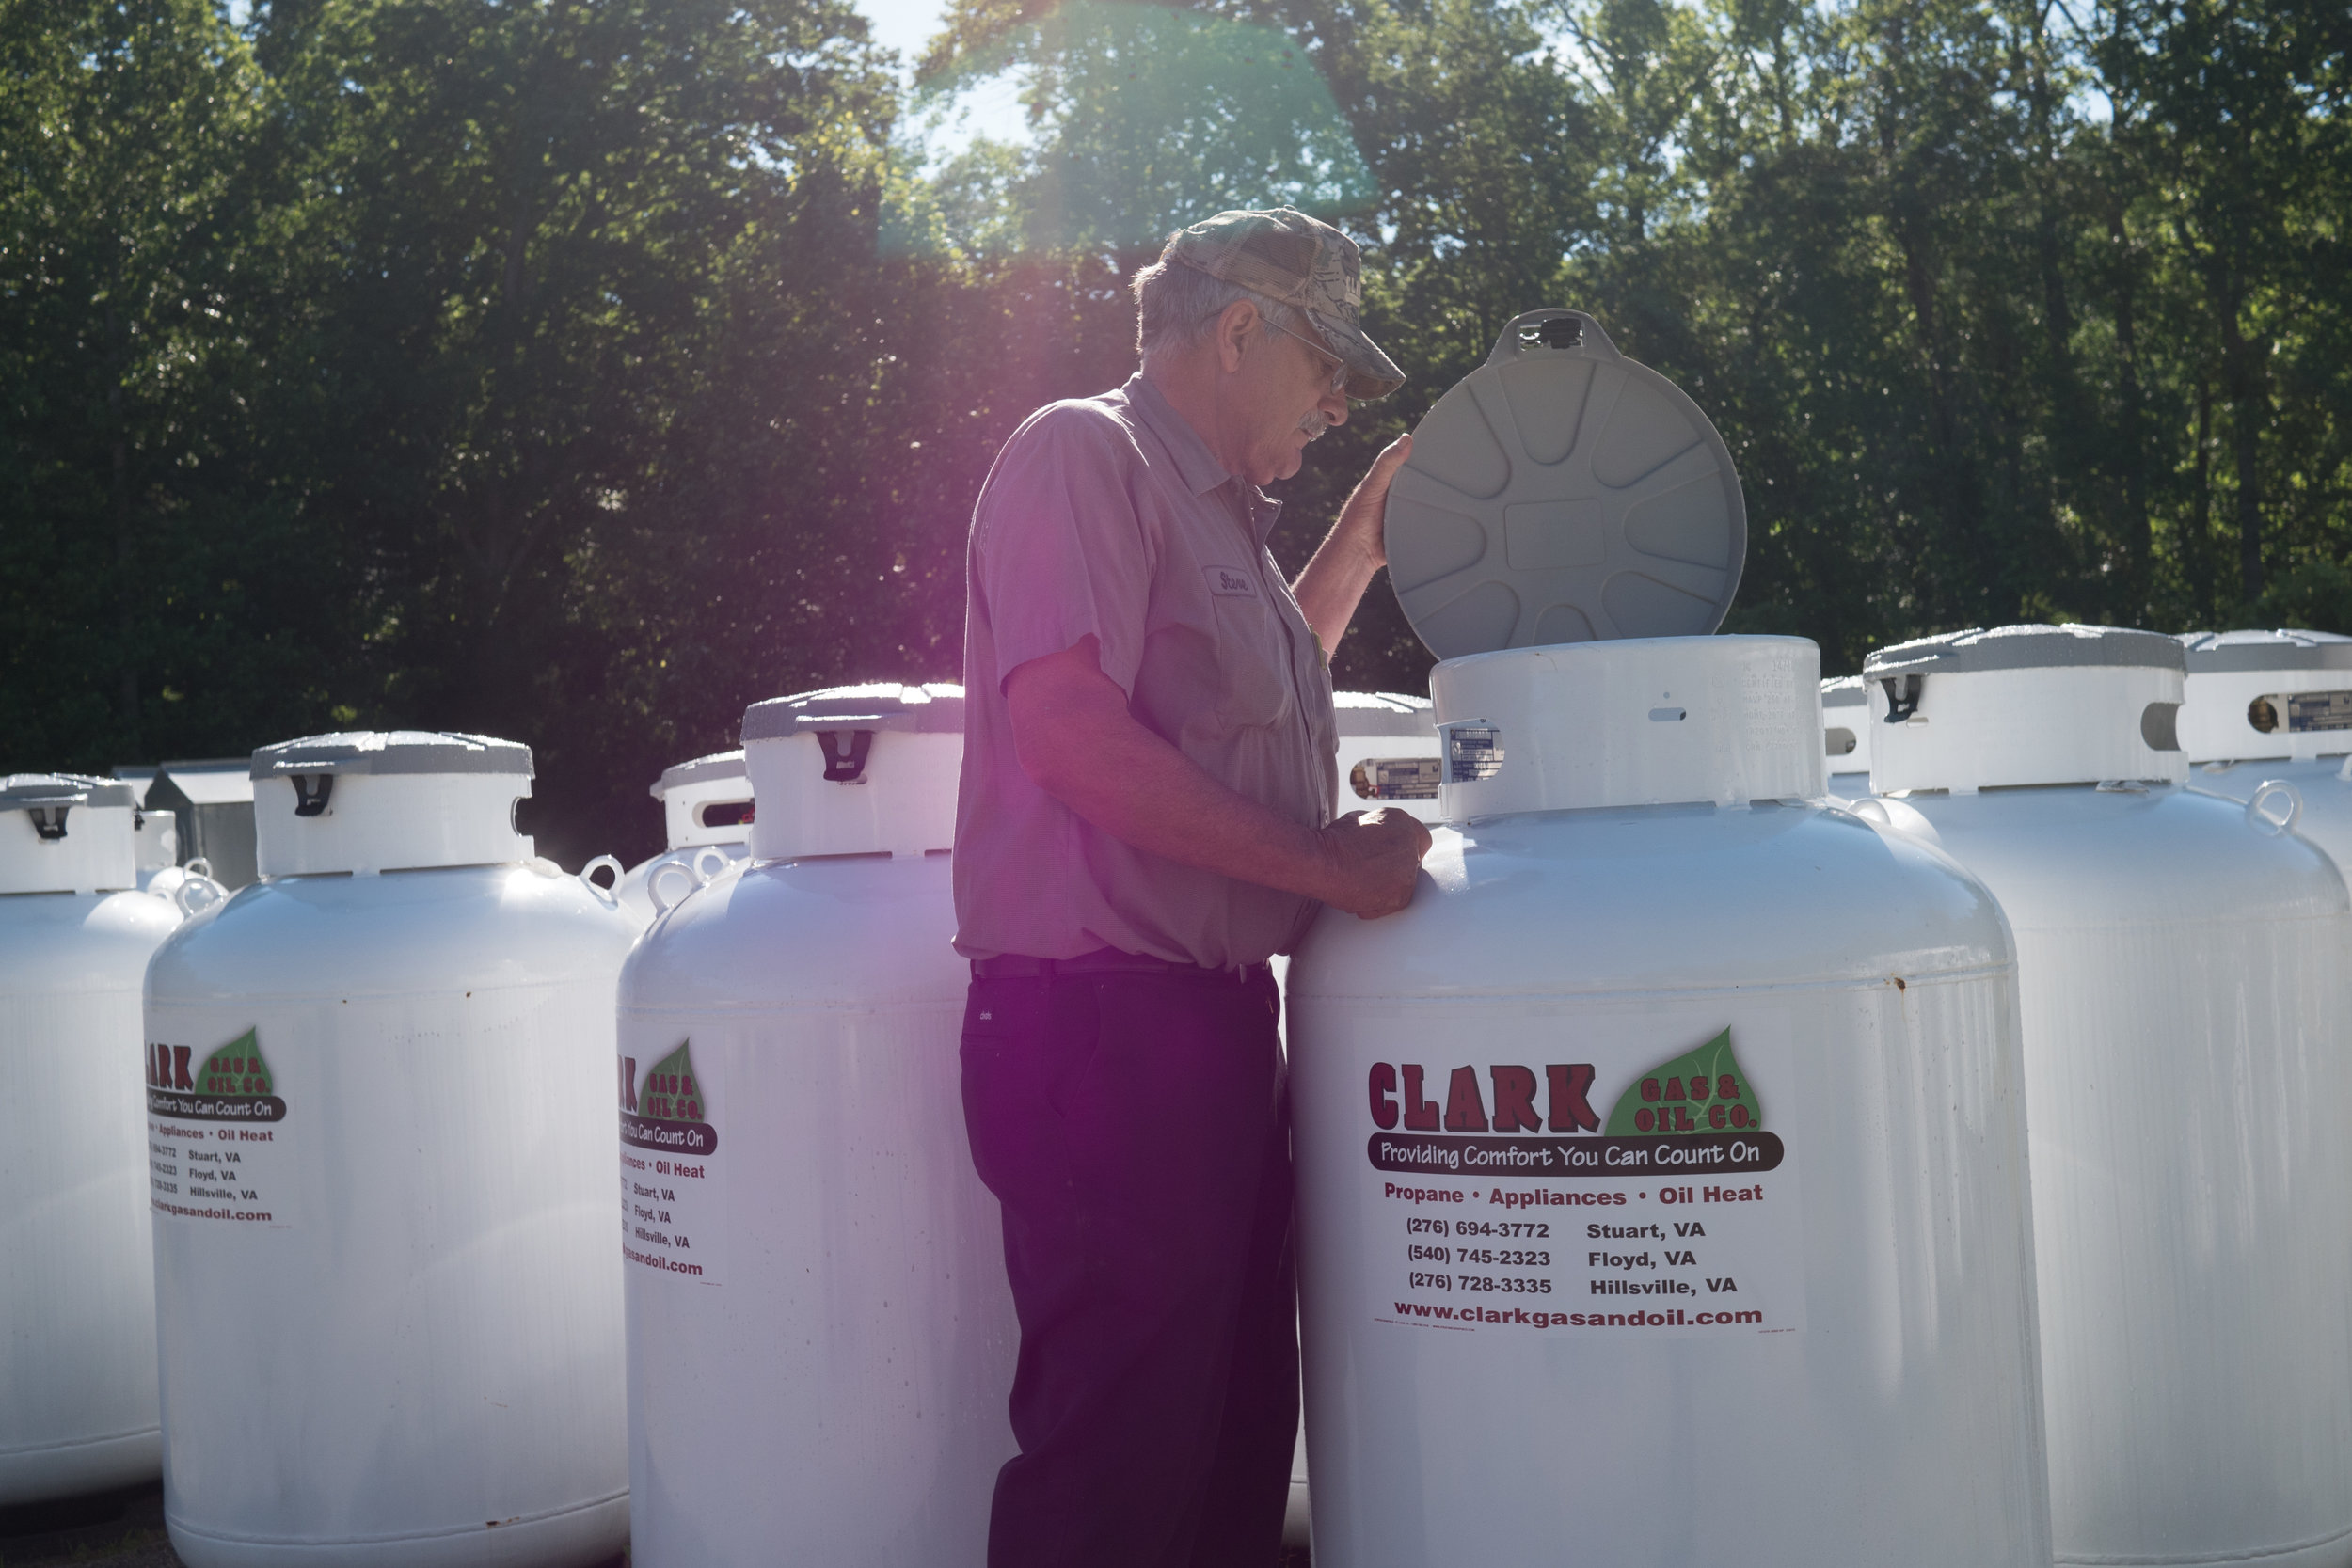 Heating Oil - Clark Gas & Oil is happy to deliver heating oil and kerosene to customers' homes and businesses. We are your family owned provider for residential and commercial heating oil in Patrick, Carroll, Floyd, and Montgomery Counties, and the surrounding area.